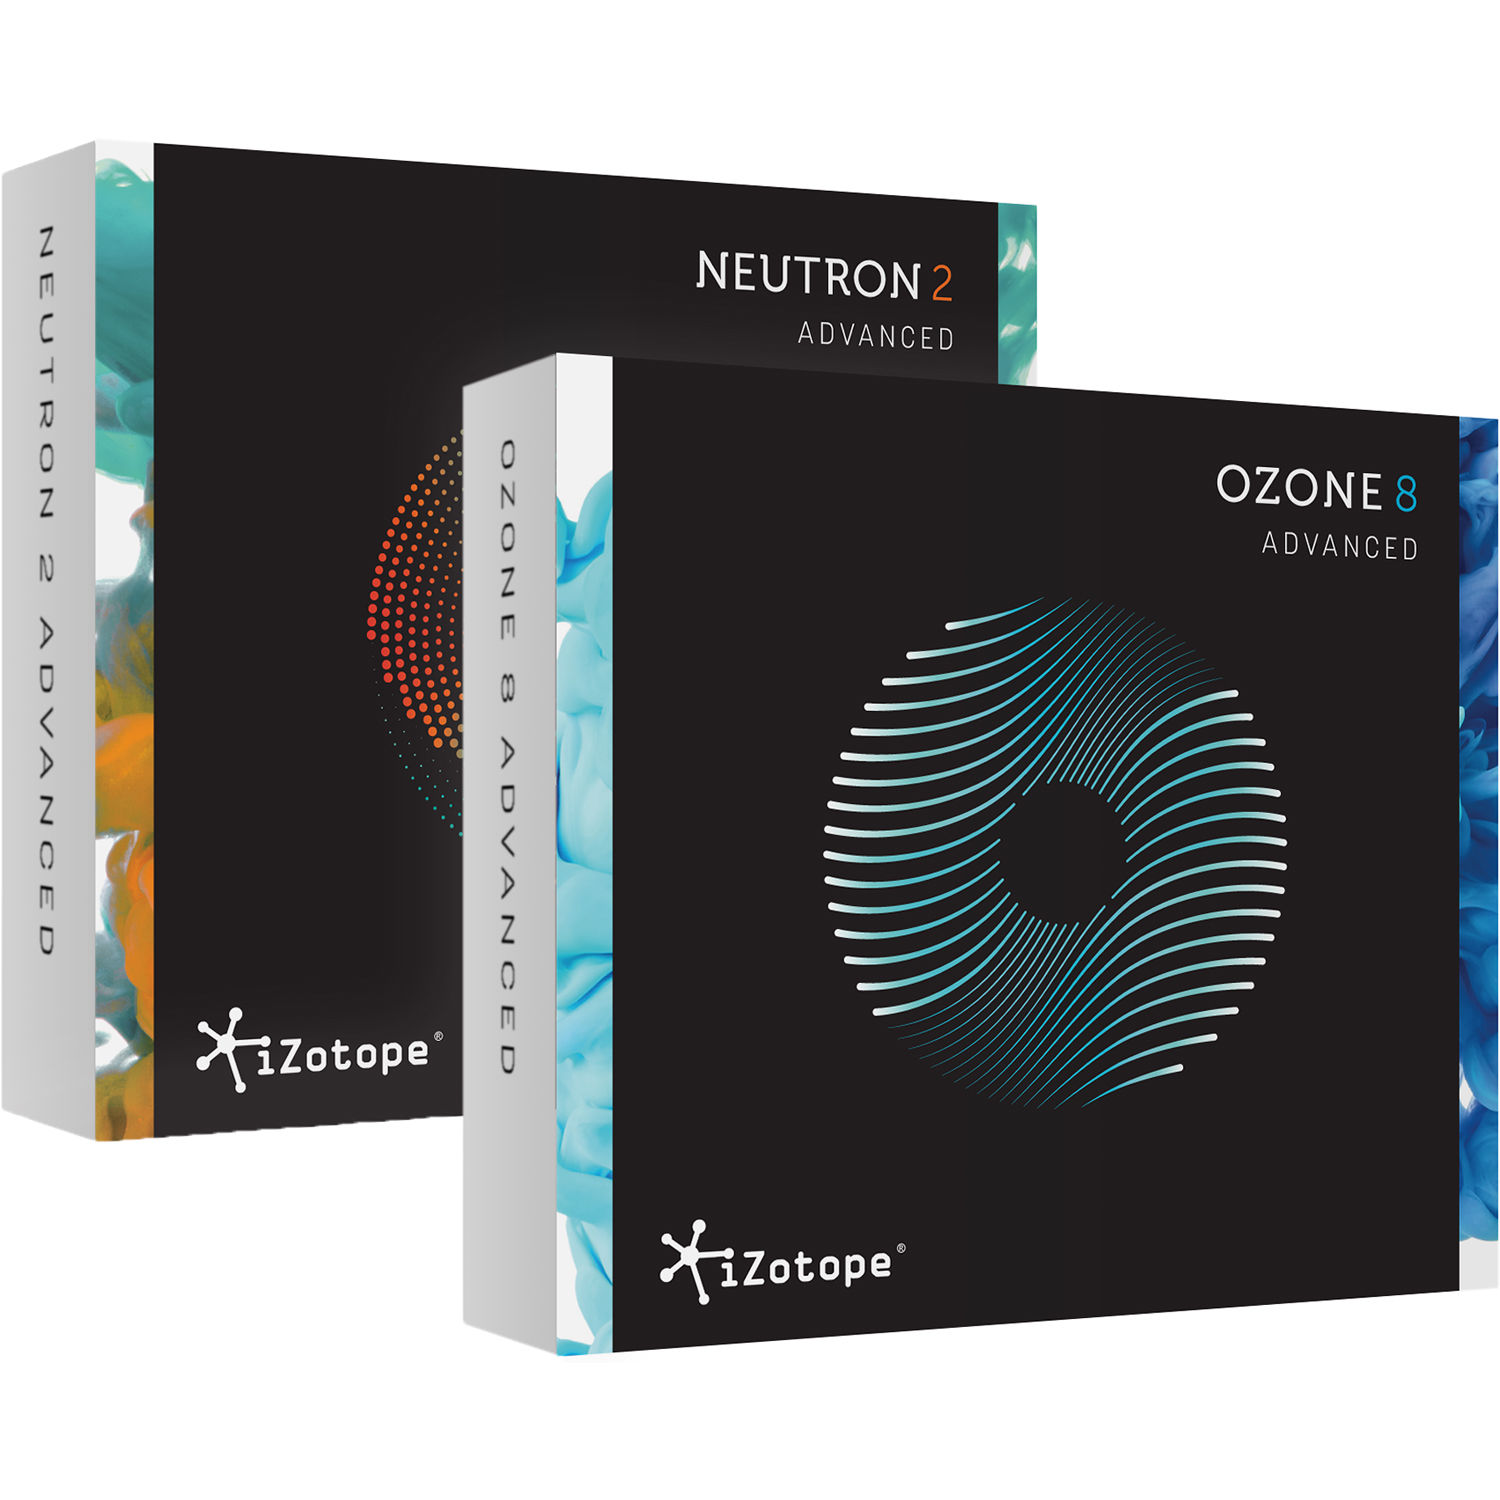 iZotope O8N2 Bundle - Mix and Master Software Bundle for Audio Production  (Full Version, Download)